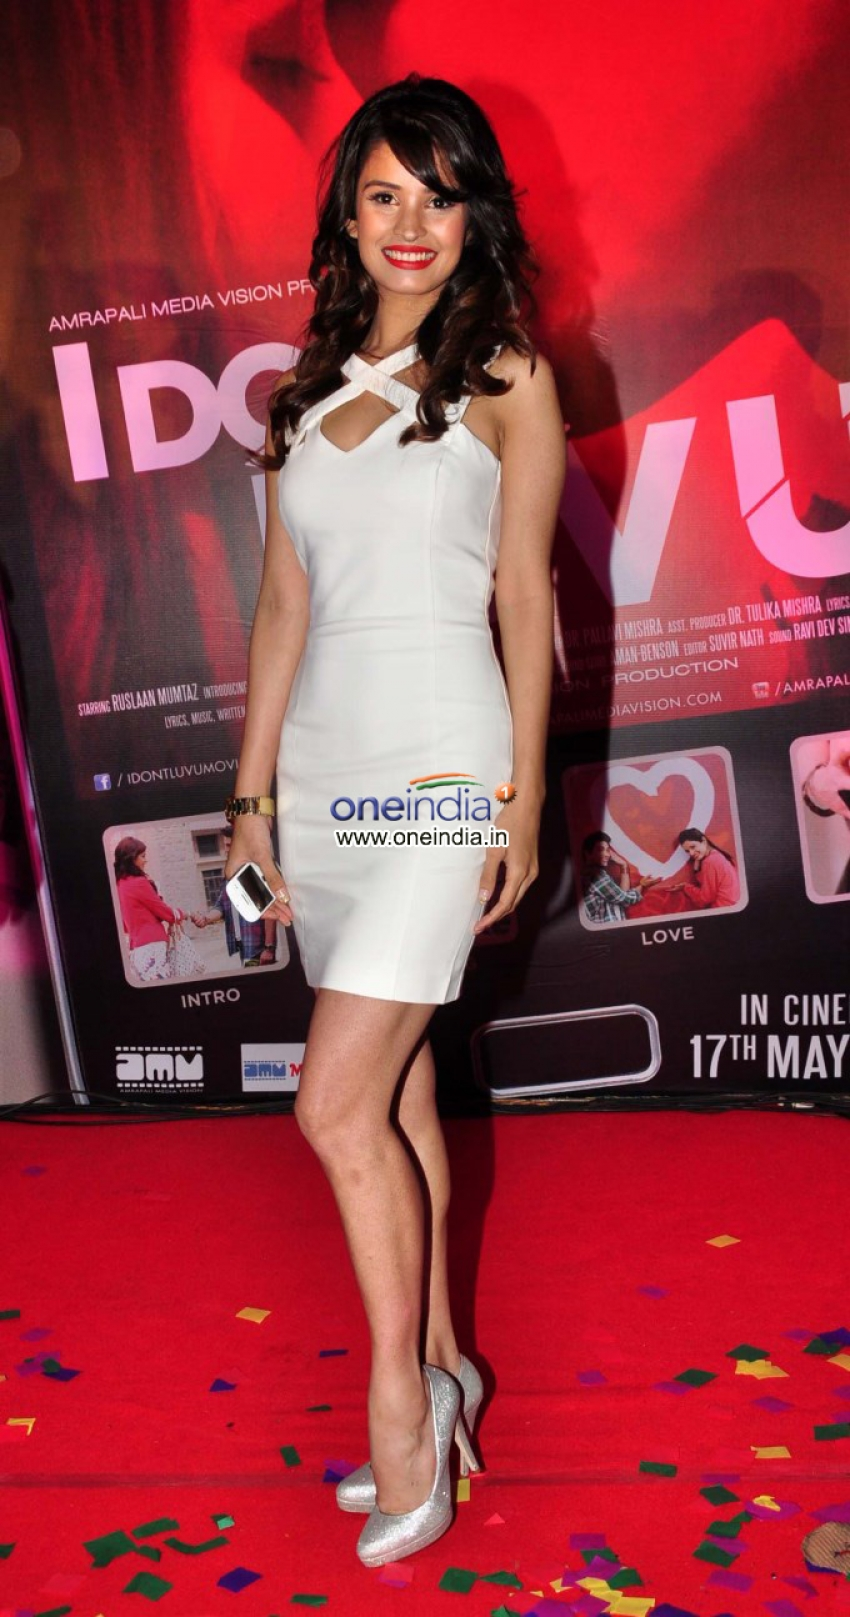 Music Launch of I Don't Luv U Photos